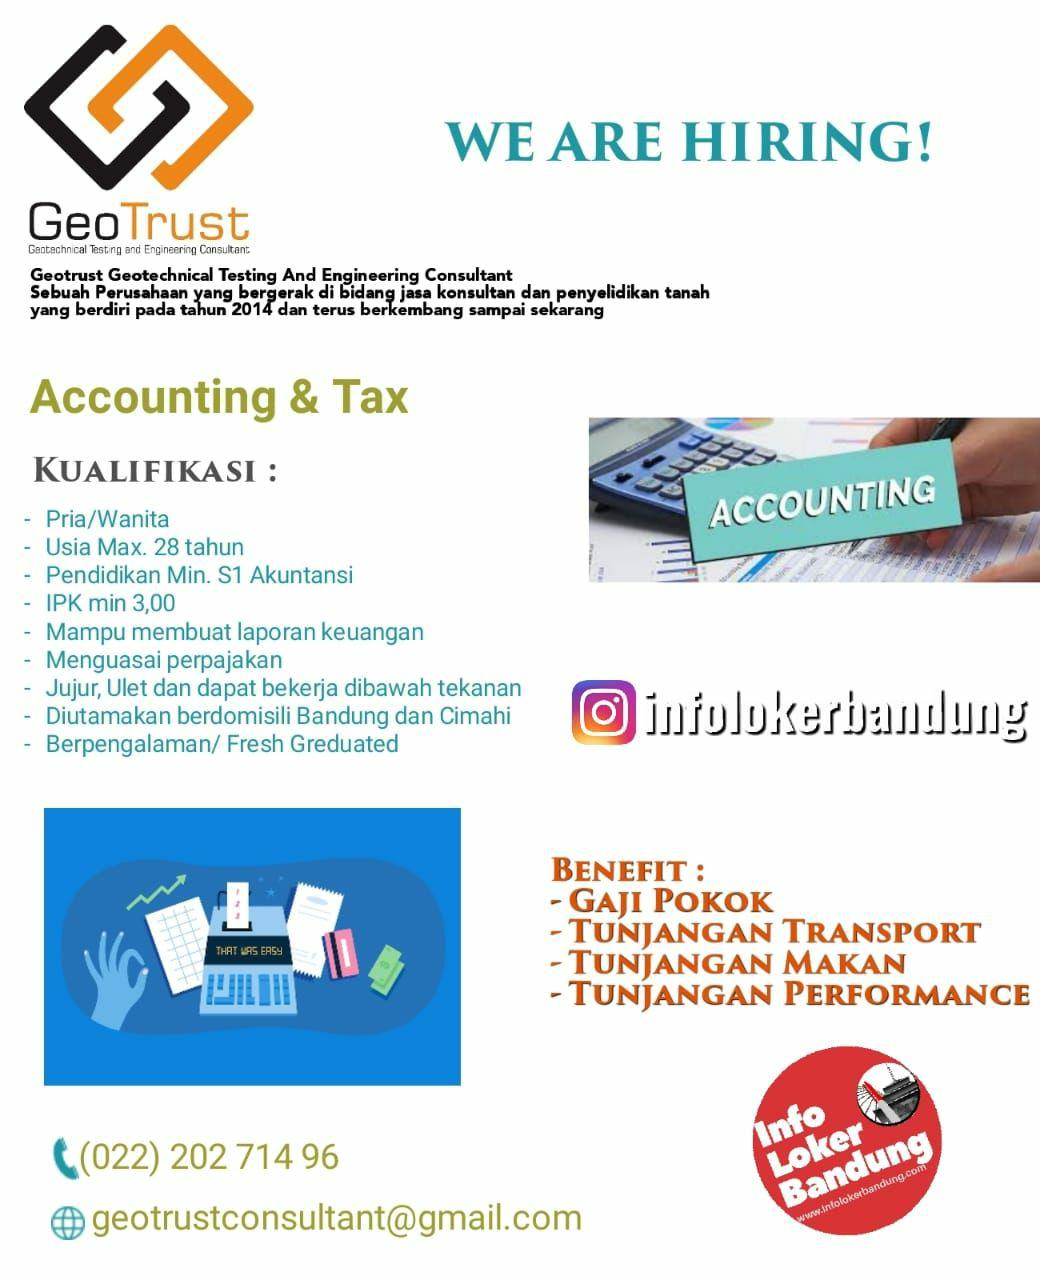 Lowongan Kerja Accounting & Tax Geotrust ( Geotachnical Testing and Engineering Consultant) Bandung September 2019